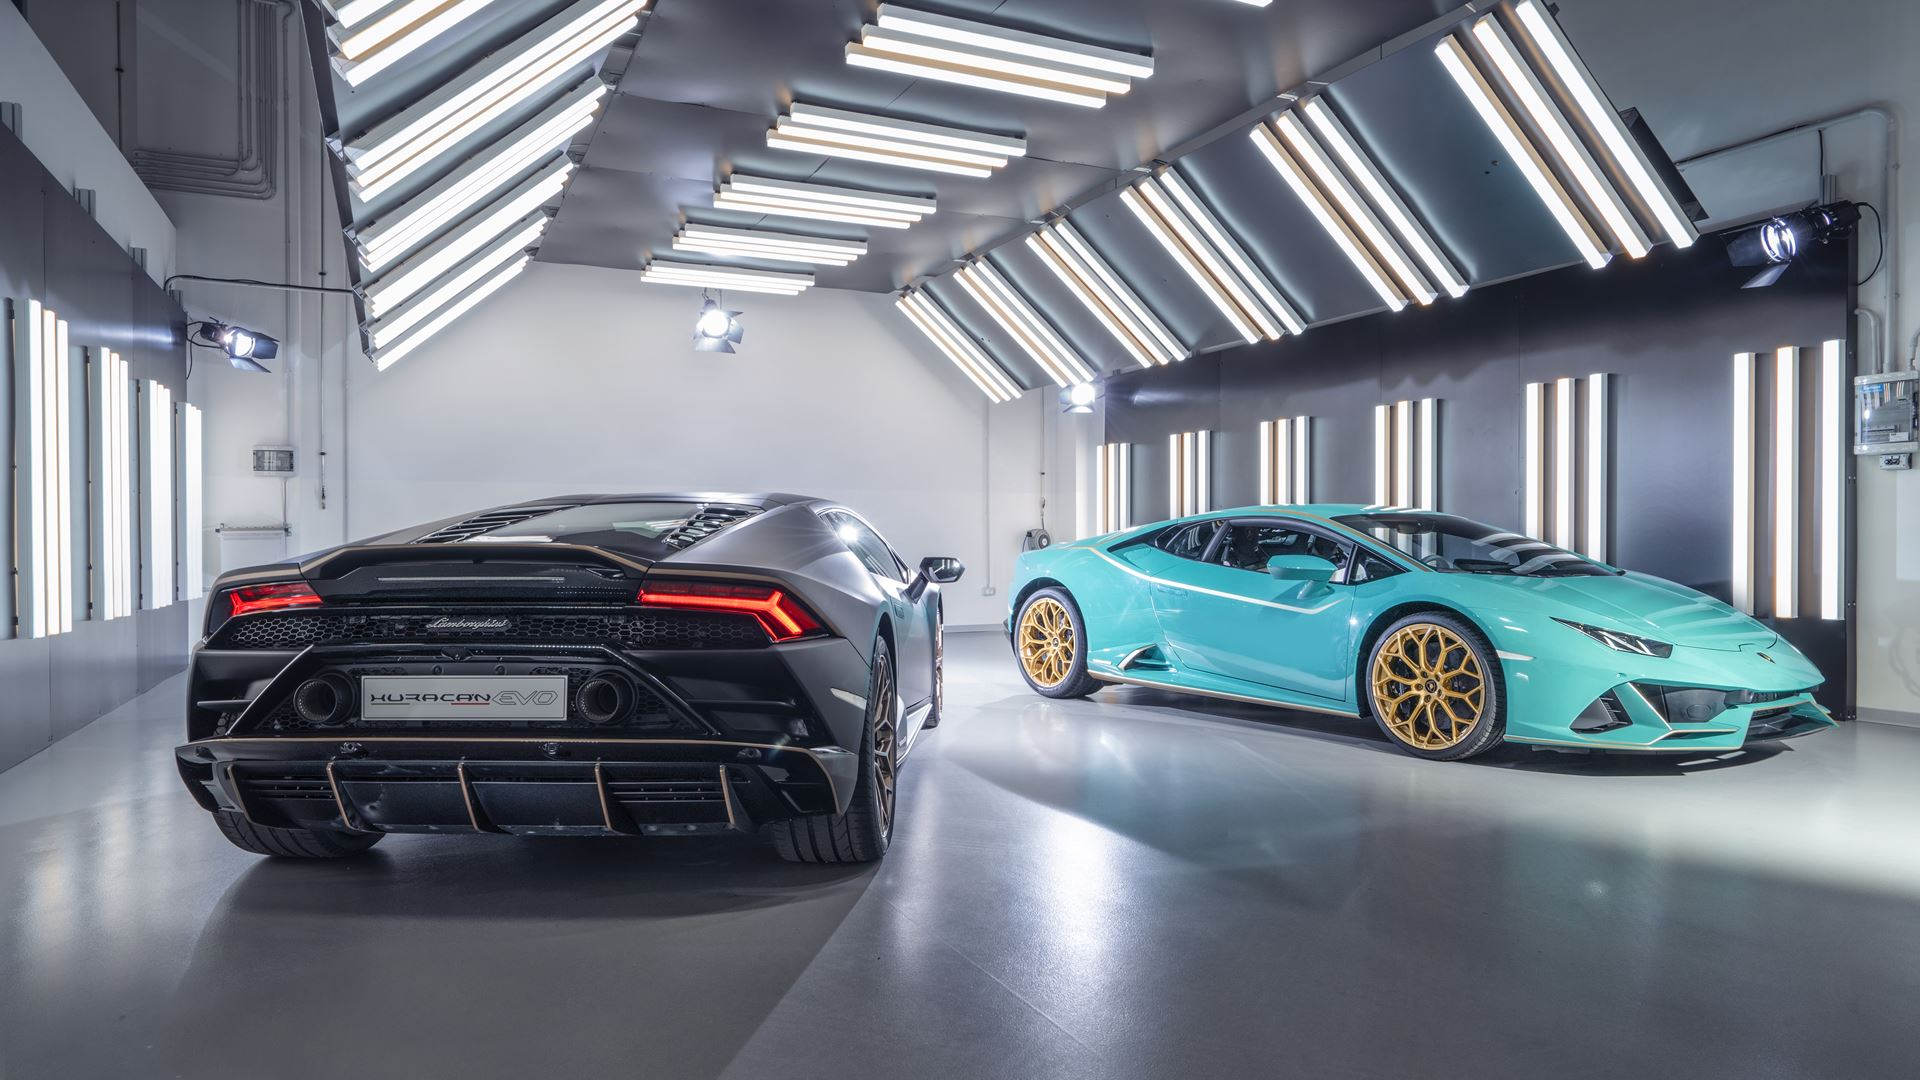 Lamborghini Mexico Commissions Special Edition Models To Commemorate 10 Years in the Region - Image 5